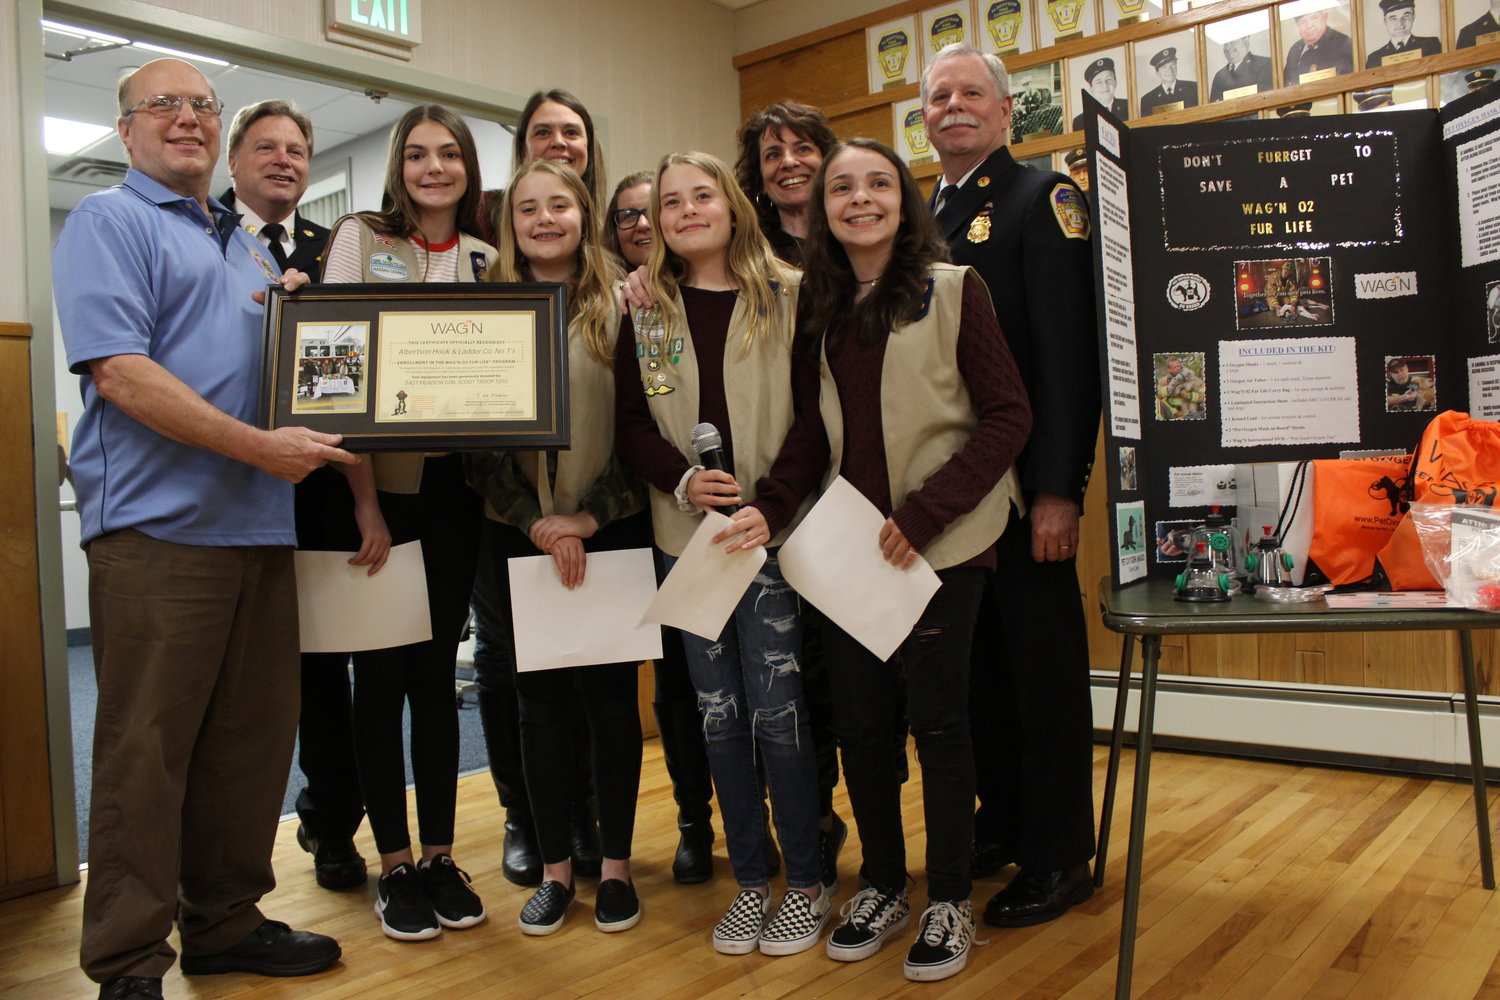 Chiefs Jay Janowitz, left, Joe Melamed and Timothy Farrell, far right, with Megan, Emily, Kate, Corrine and their parents, Maureen Hand, Patty Leahy and Pamela Rufolo.